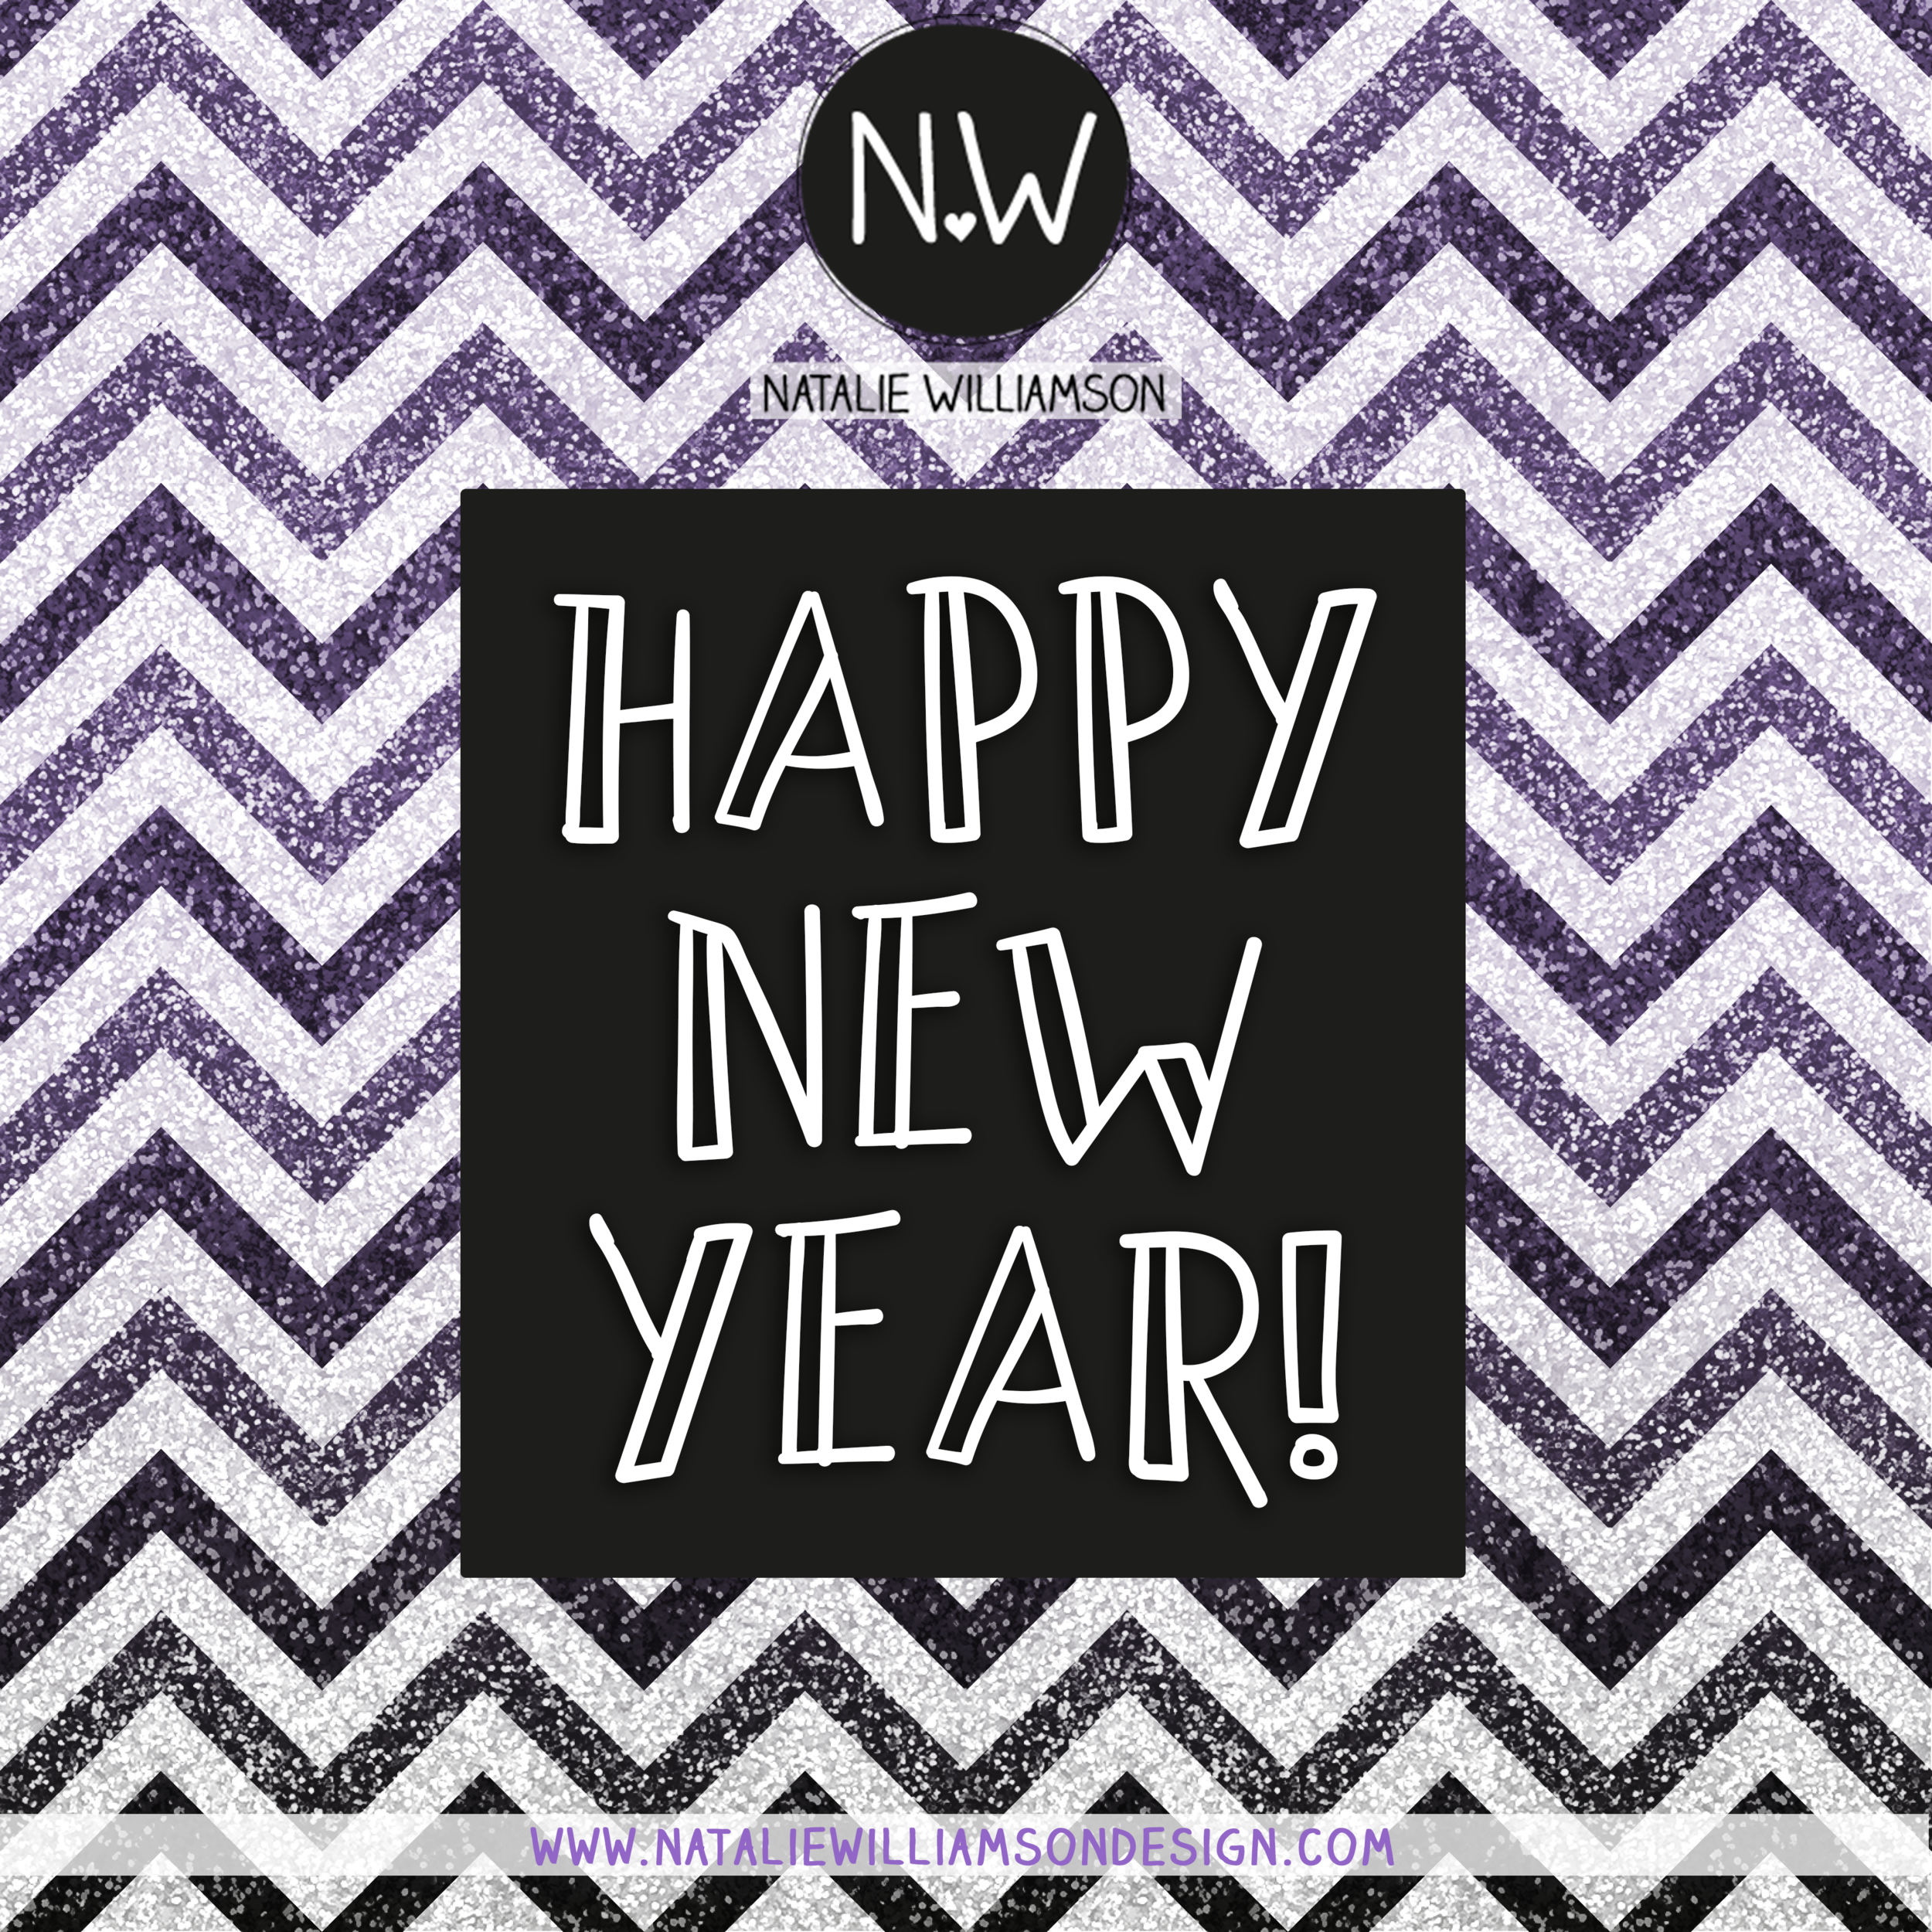 Natalie_Williamson_New_Year_Design